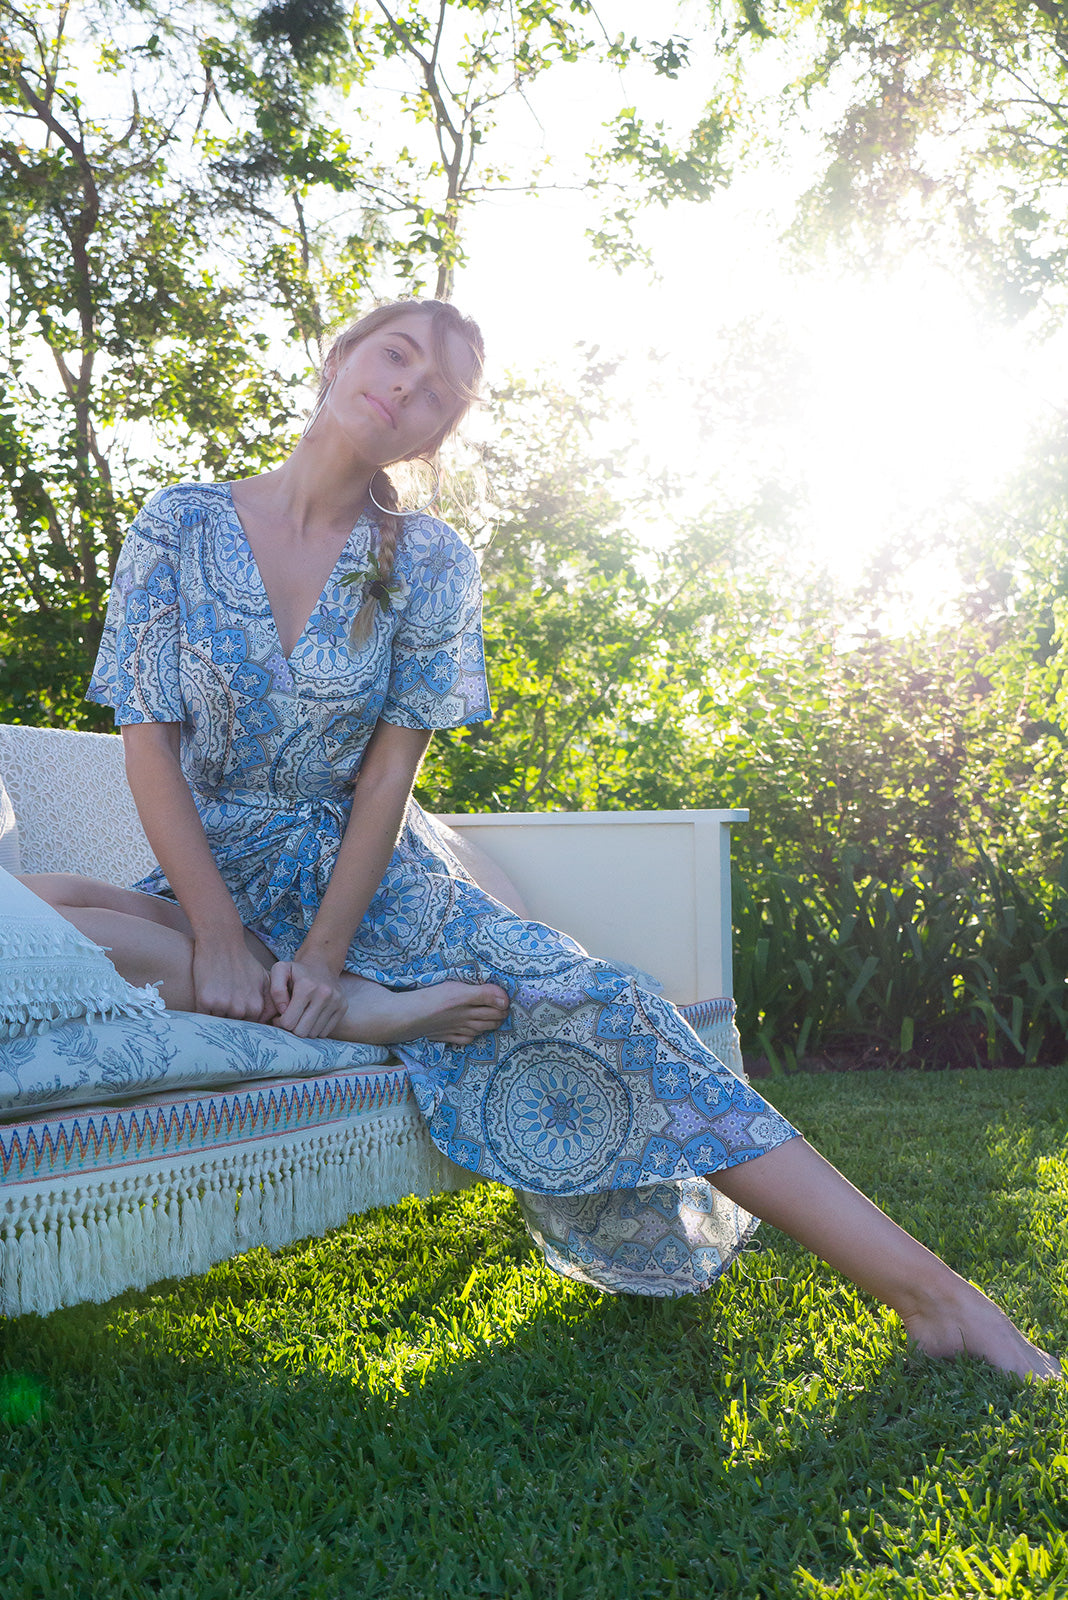 Petal Almeria Maxi Wrap dress with flutter sleeves in a soft sky blue paisley print